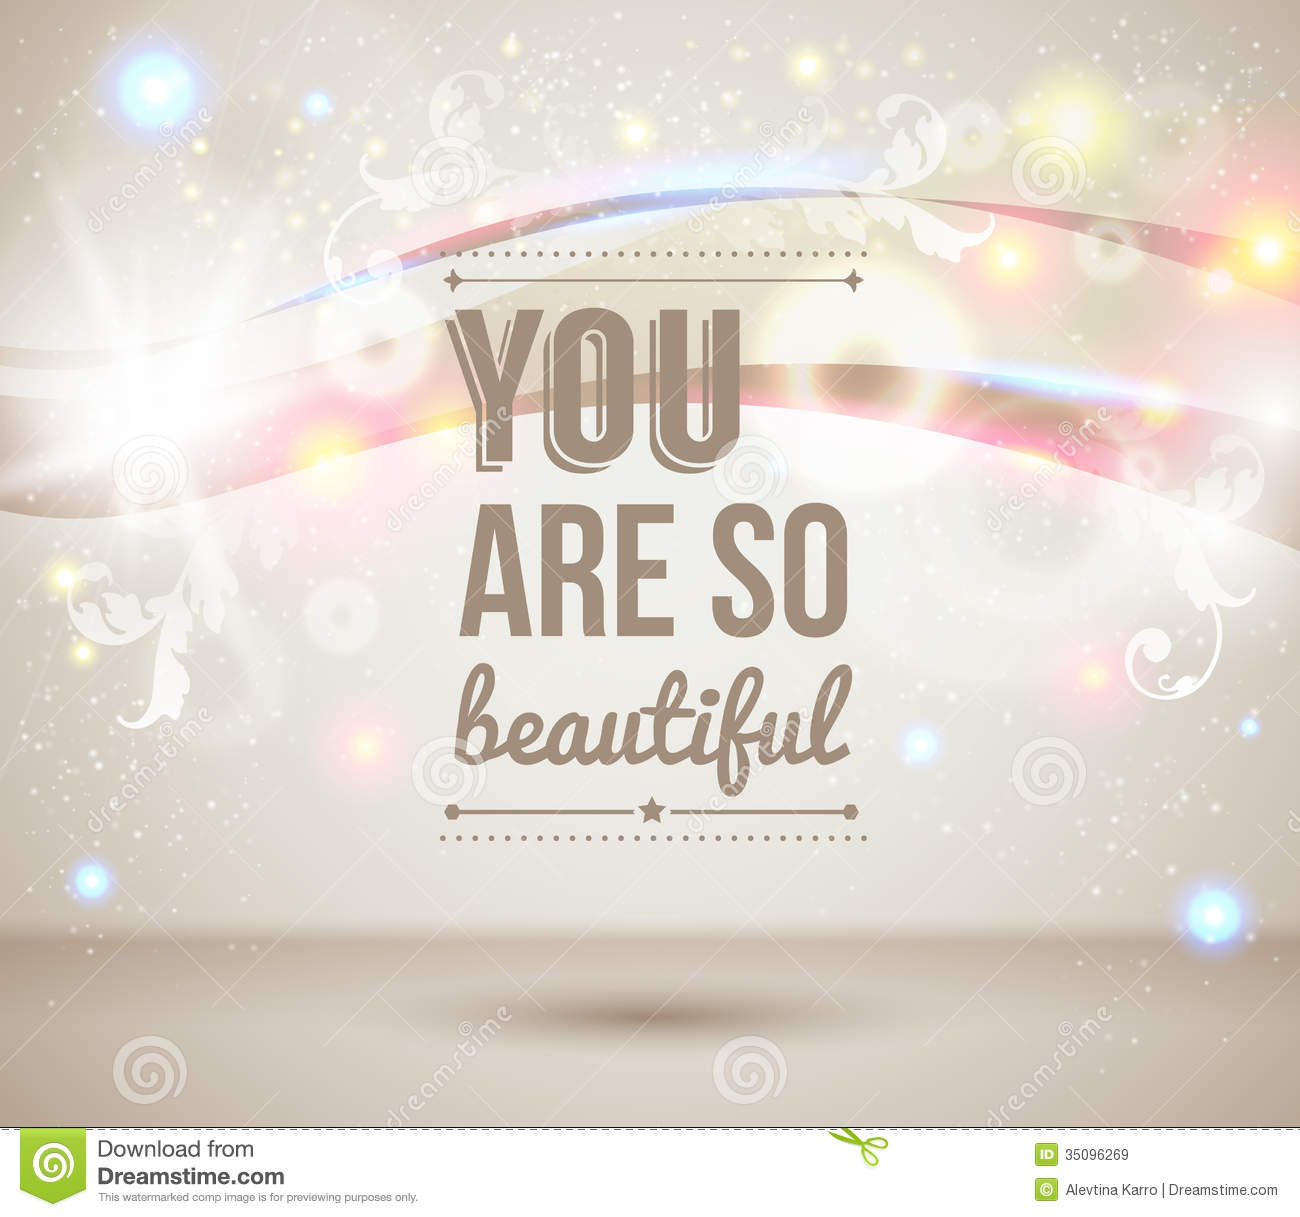 clipart you are wonderful - photo #13